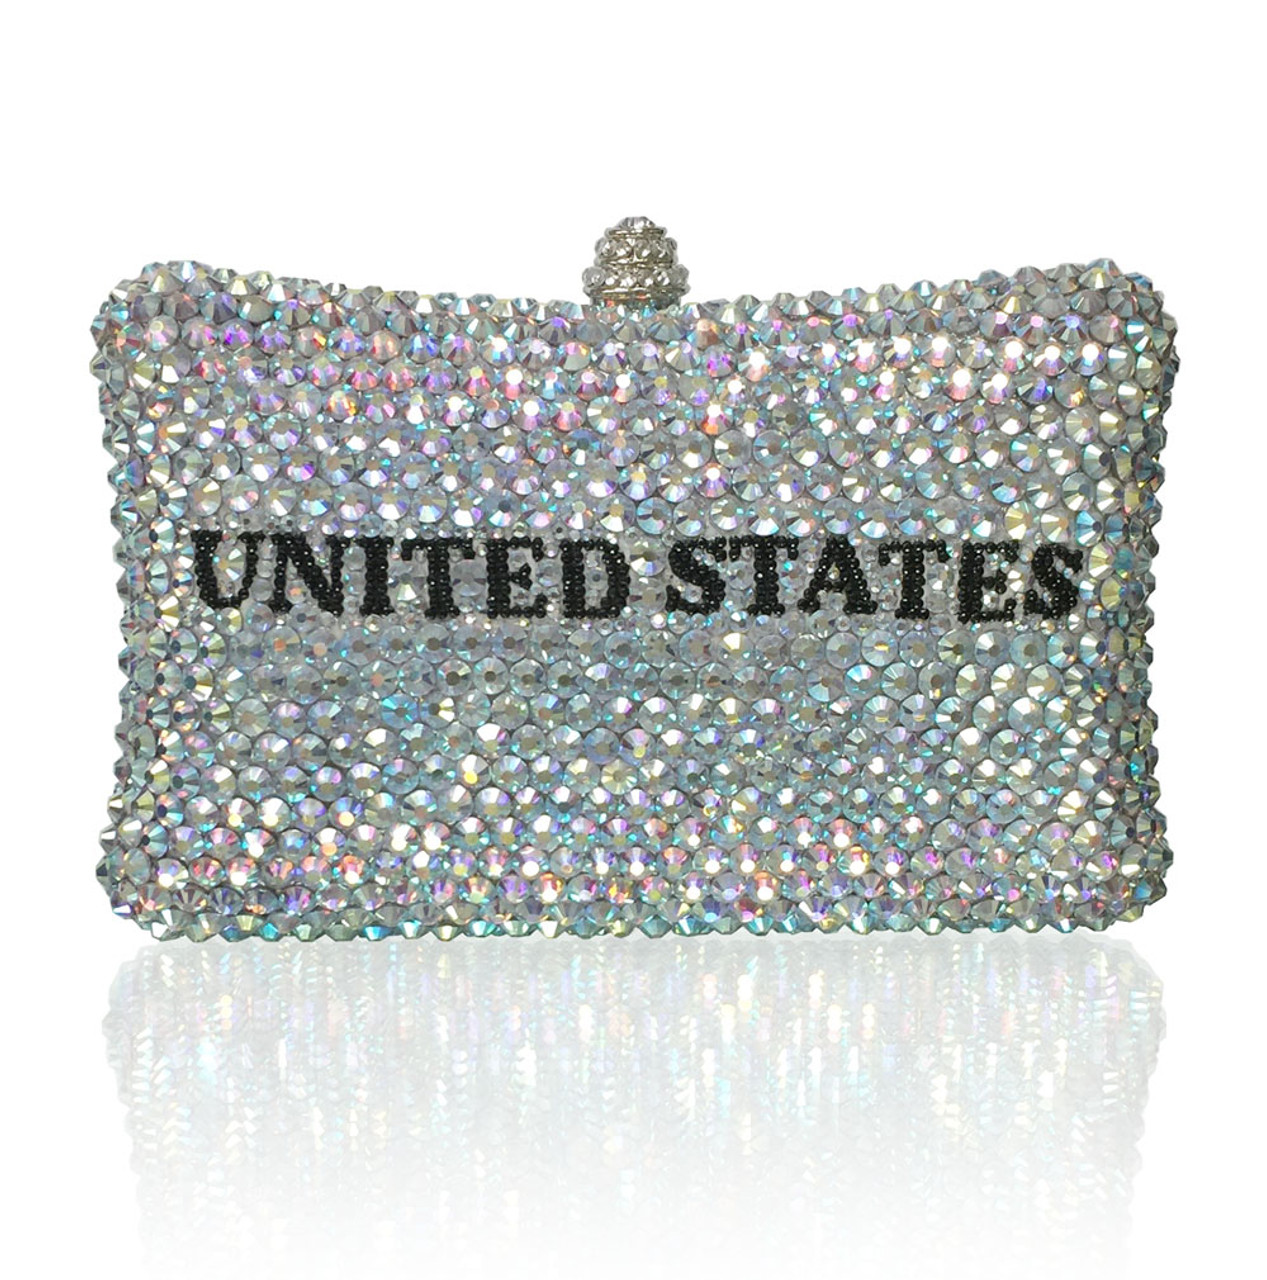 Personalized Luxury Handmade Crystal Evening Clutch